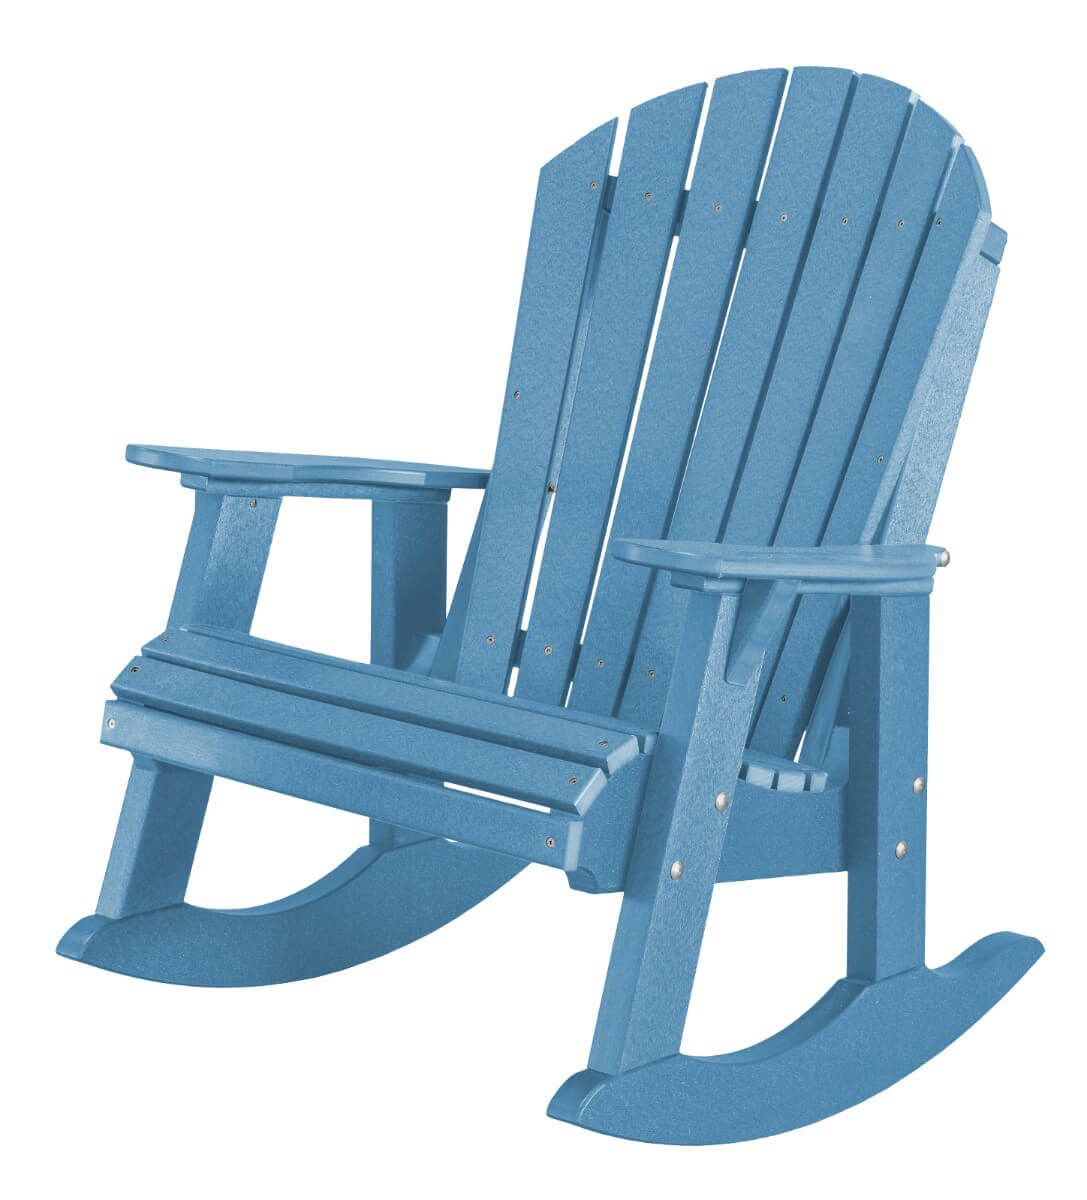 Powder Blue Sidra Adirondack Rocker